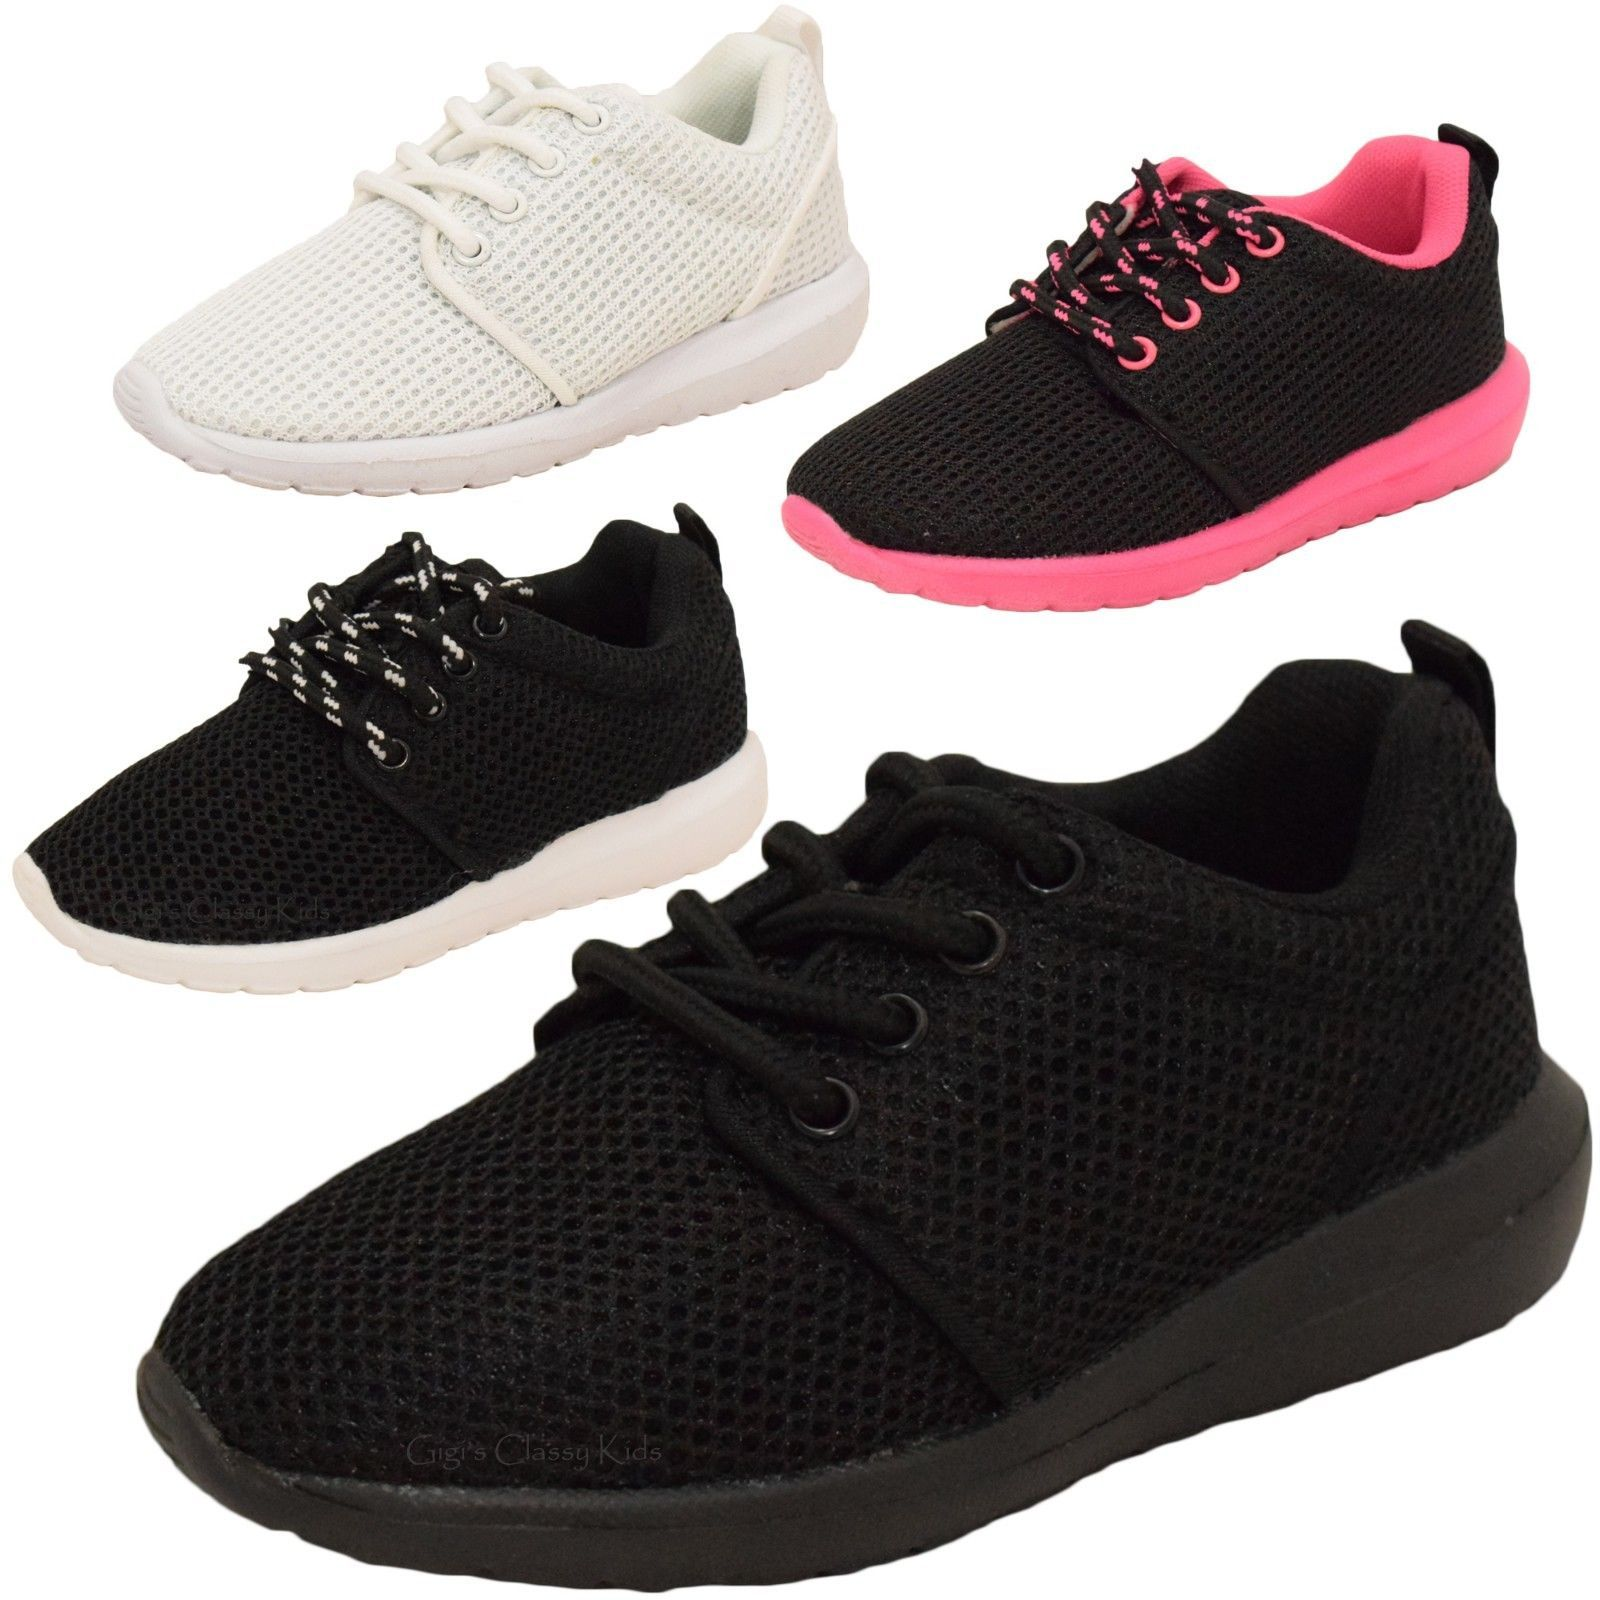 Baby Toddler Kids Mesh Tennis Shoes Sneakers Lace Up Boys Girls Unisex 4-9 New